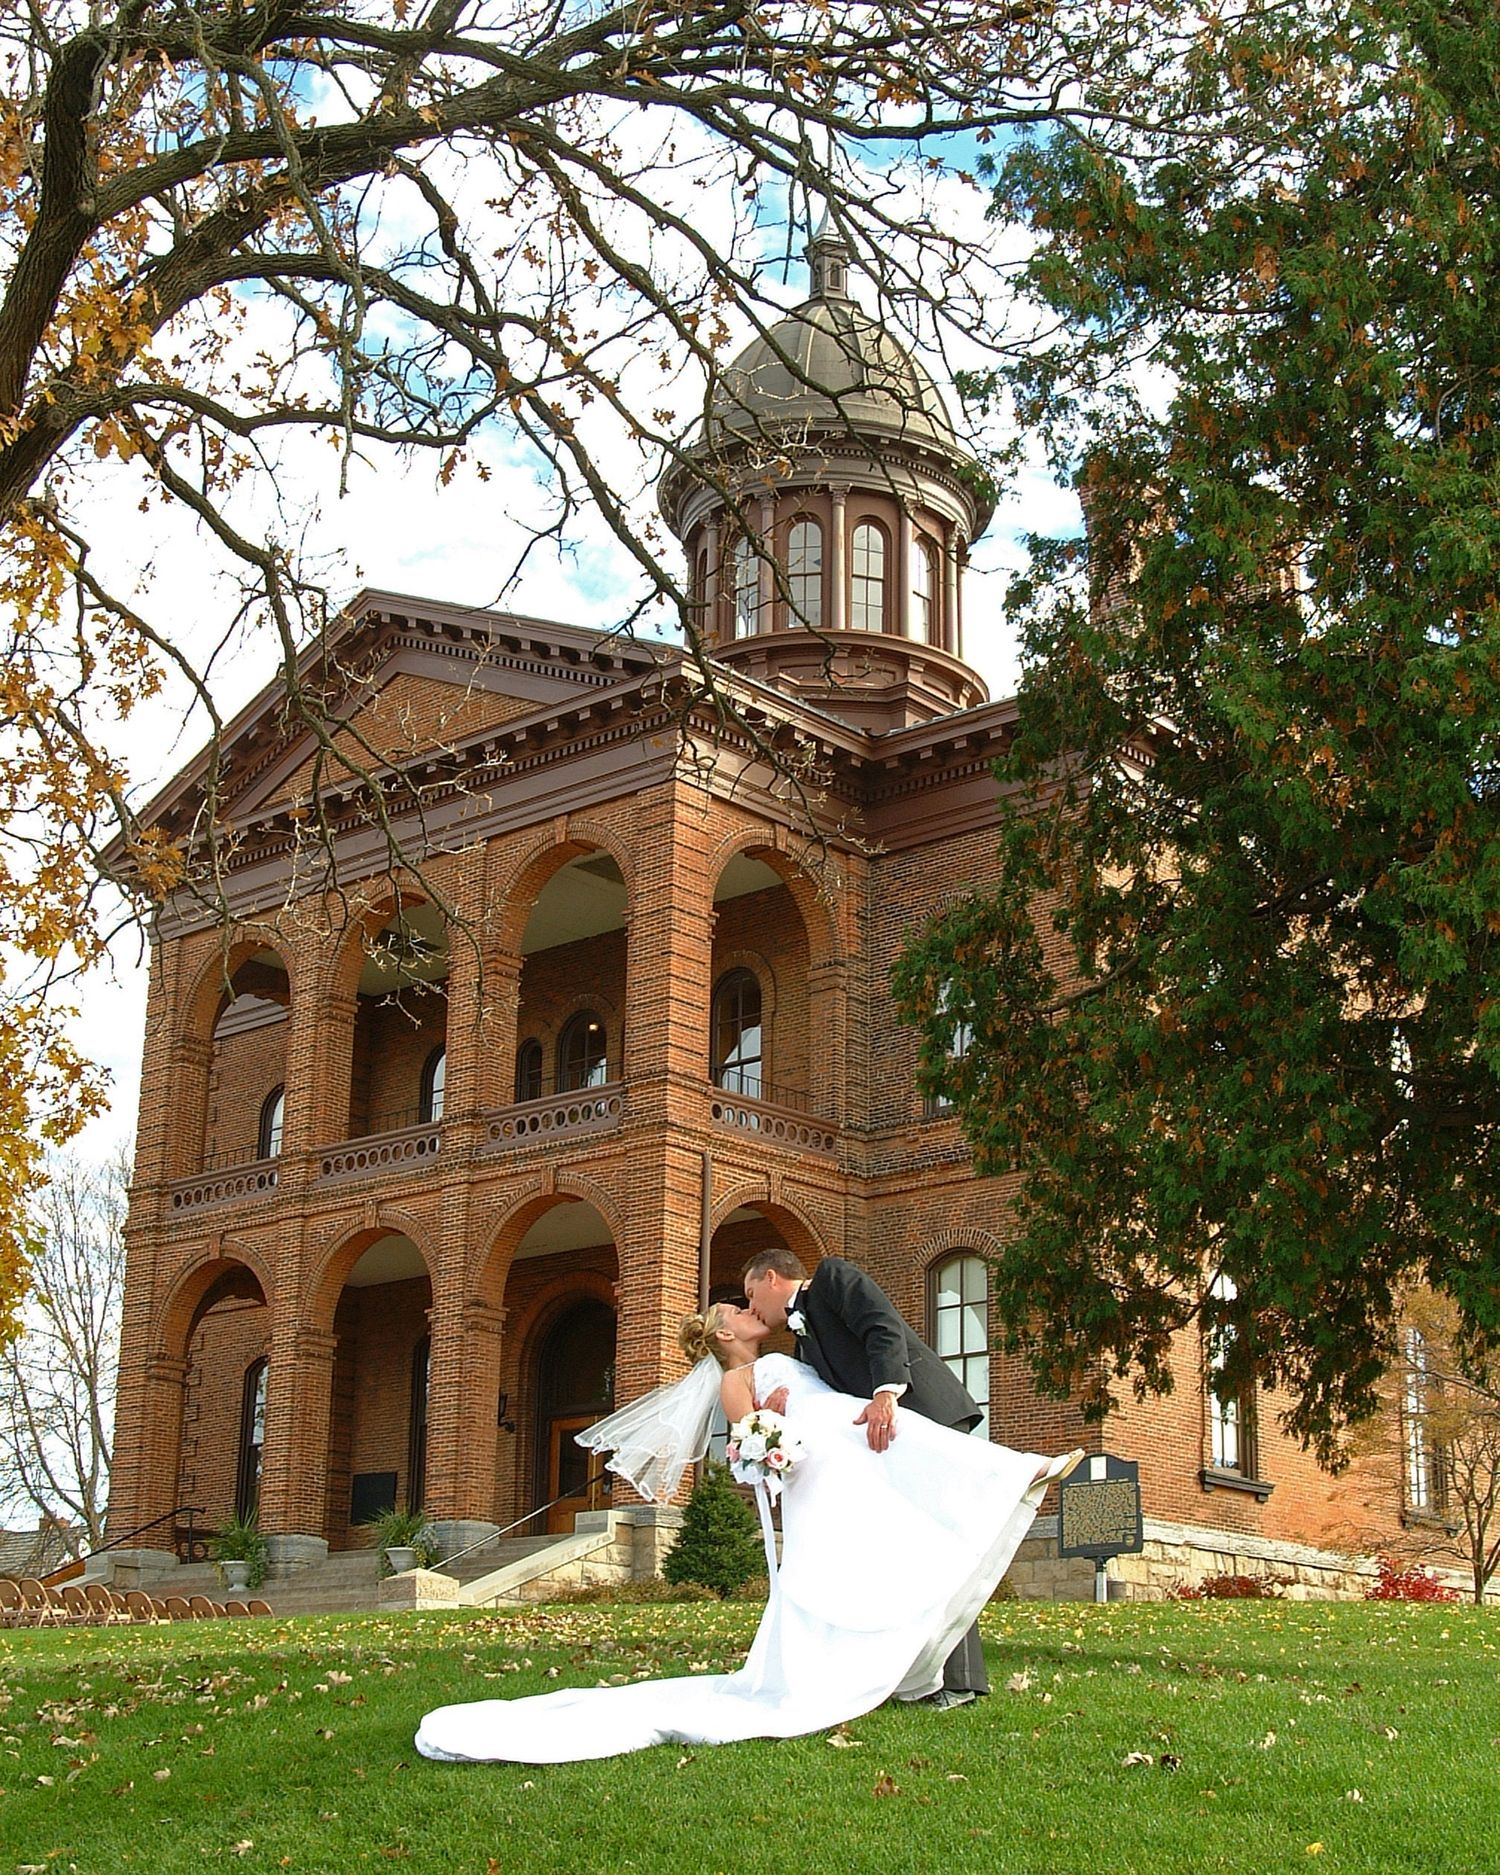 Minnesota Wedding Ceremony Locations: Washington County Historic Courthouse